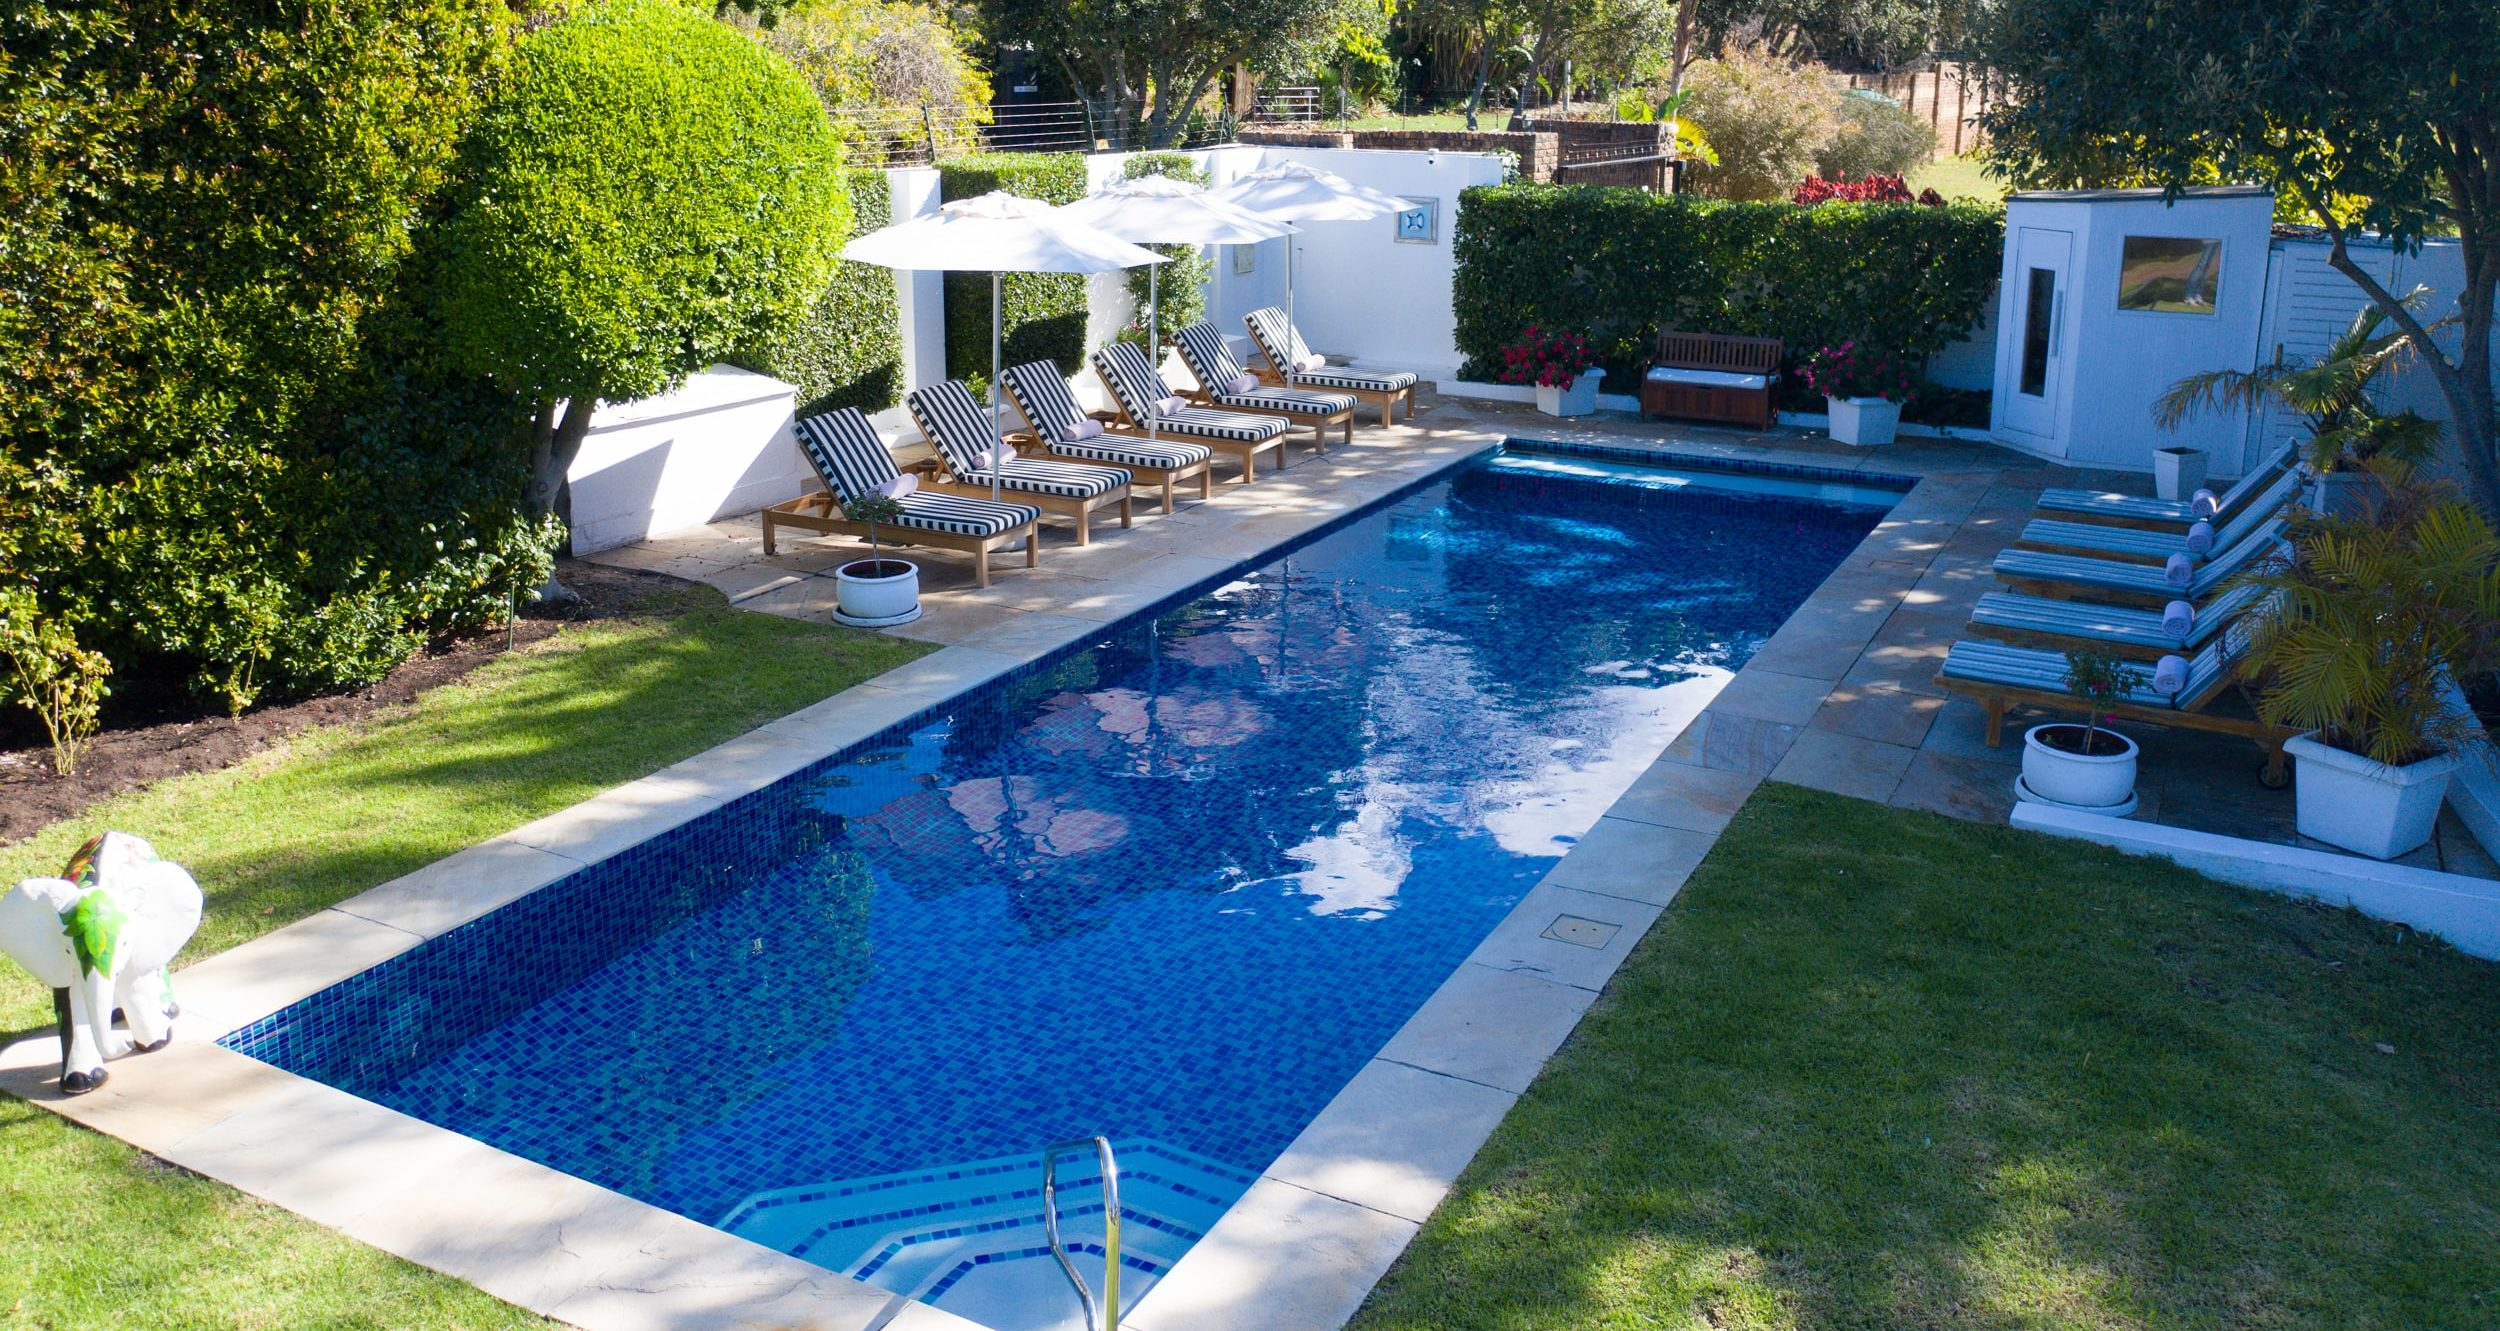 Shady swimming pool with umbrellas and black and white cushioned pool loungers